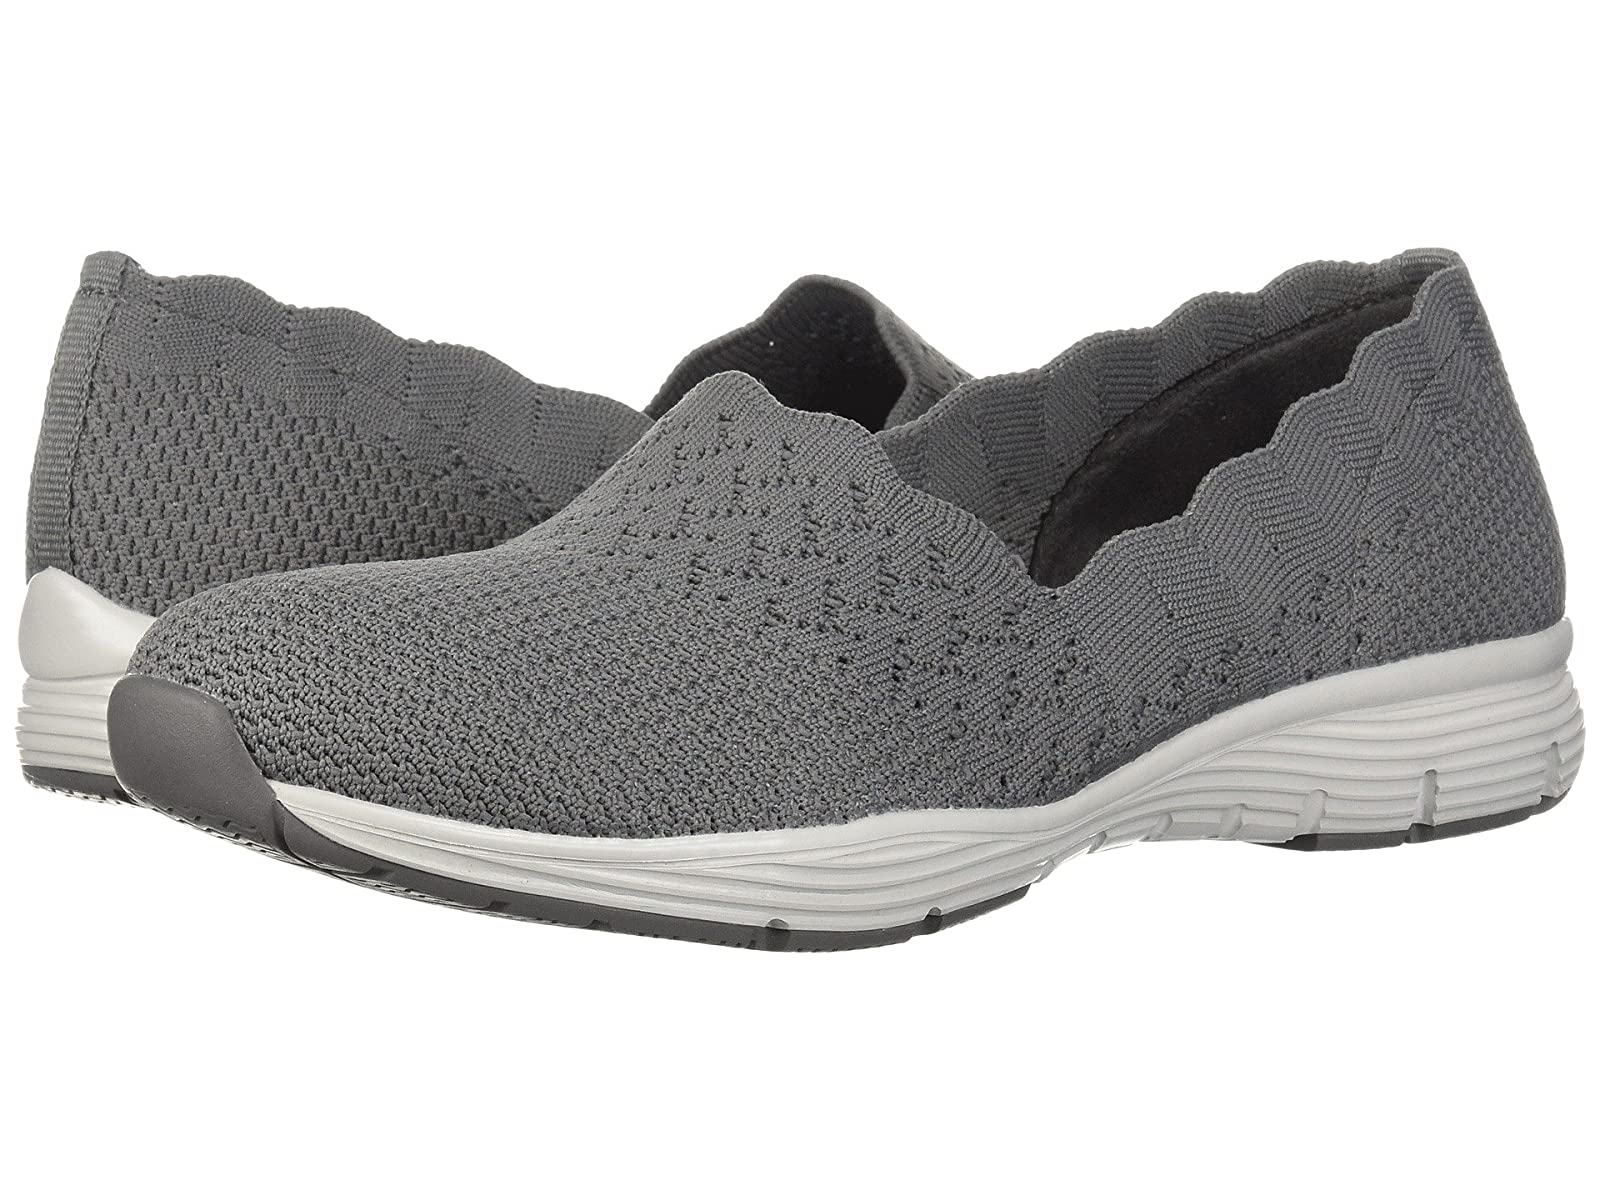 SKECHERS Seager - StatAtmospheric grades have affordable shoes